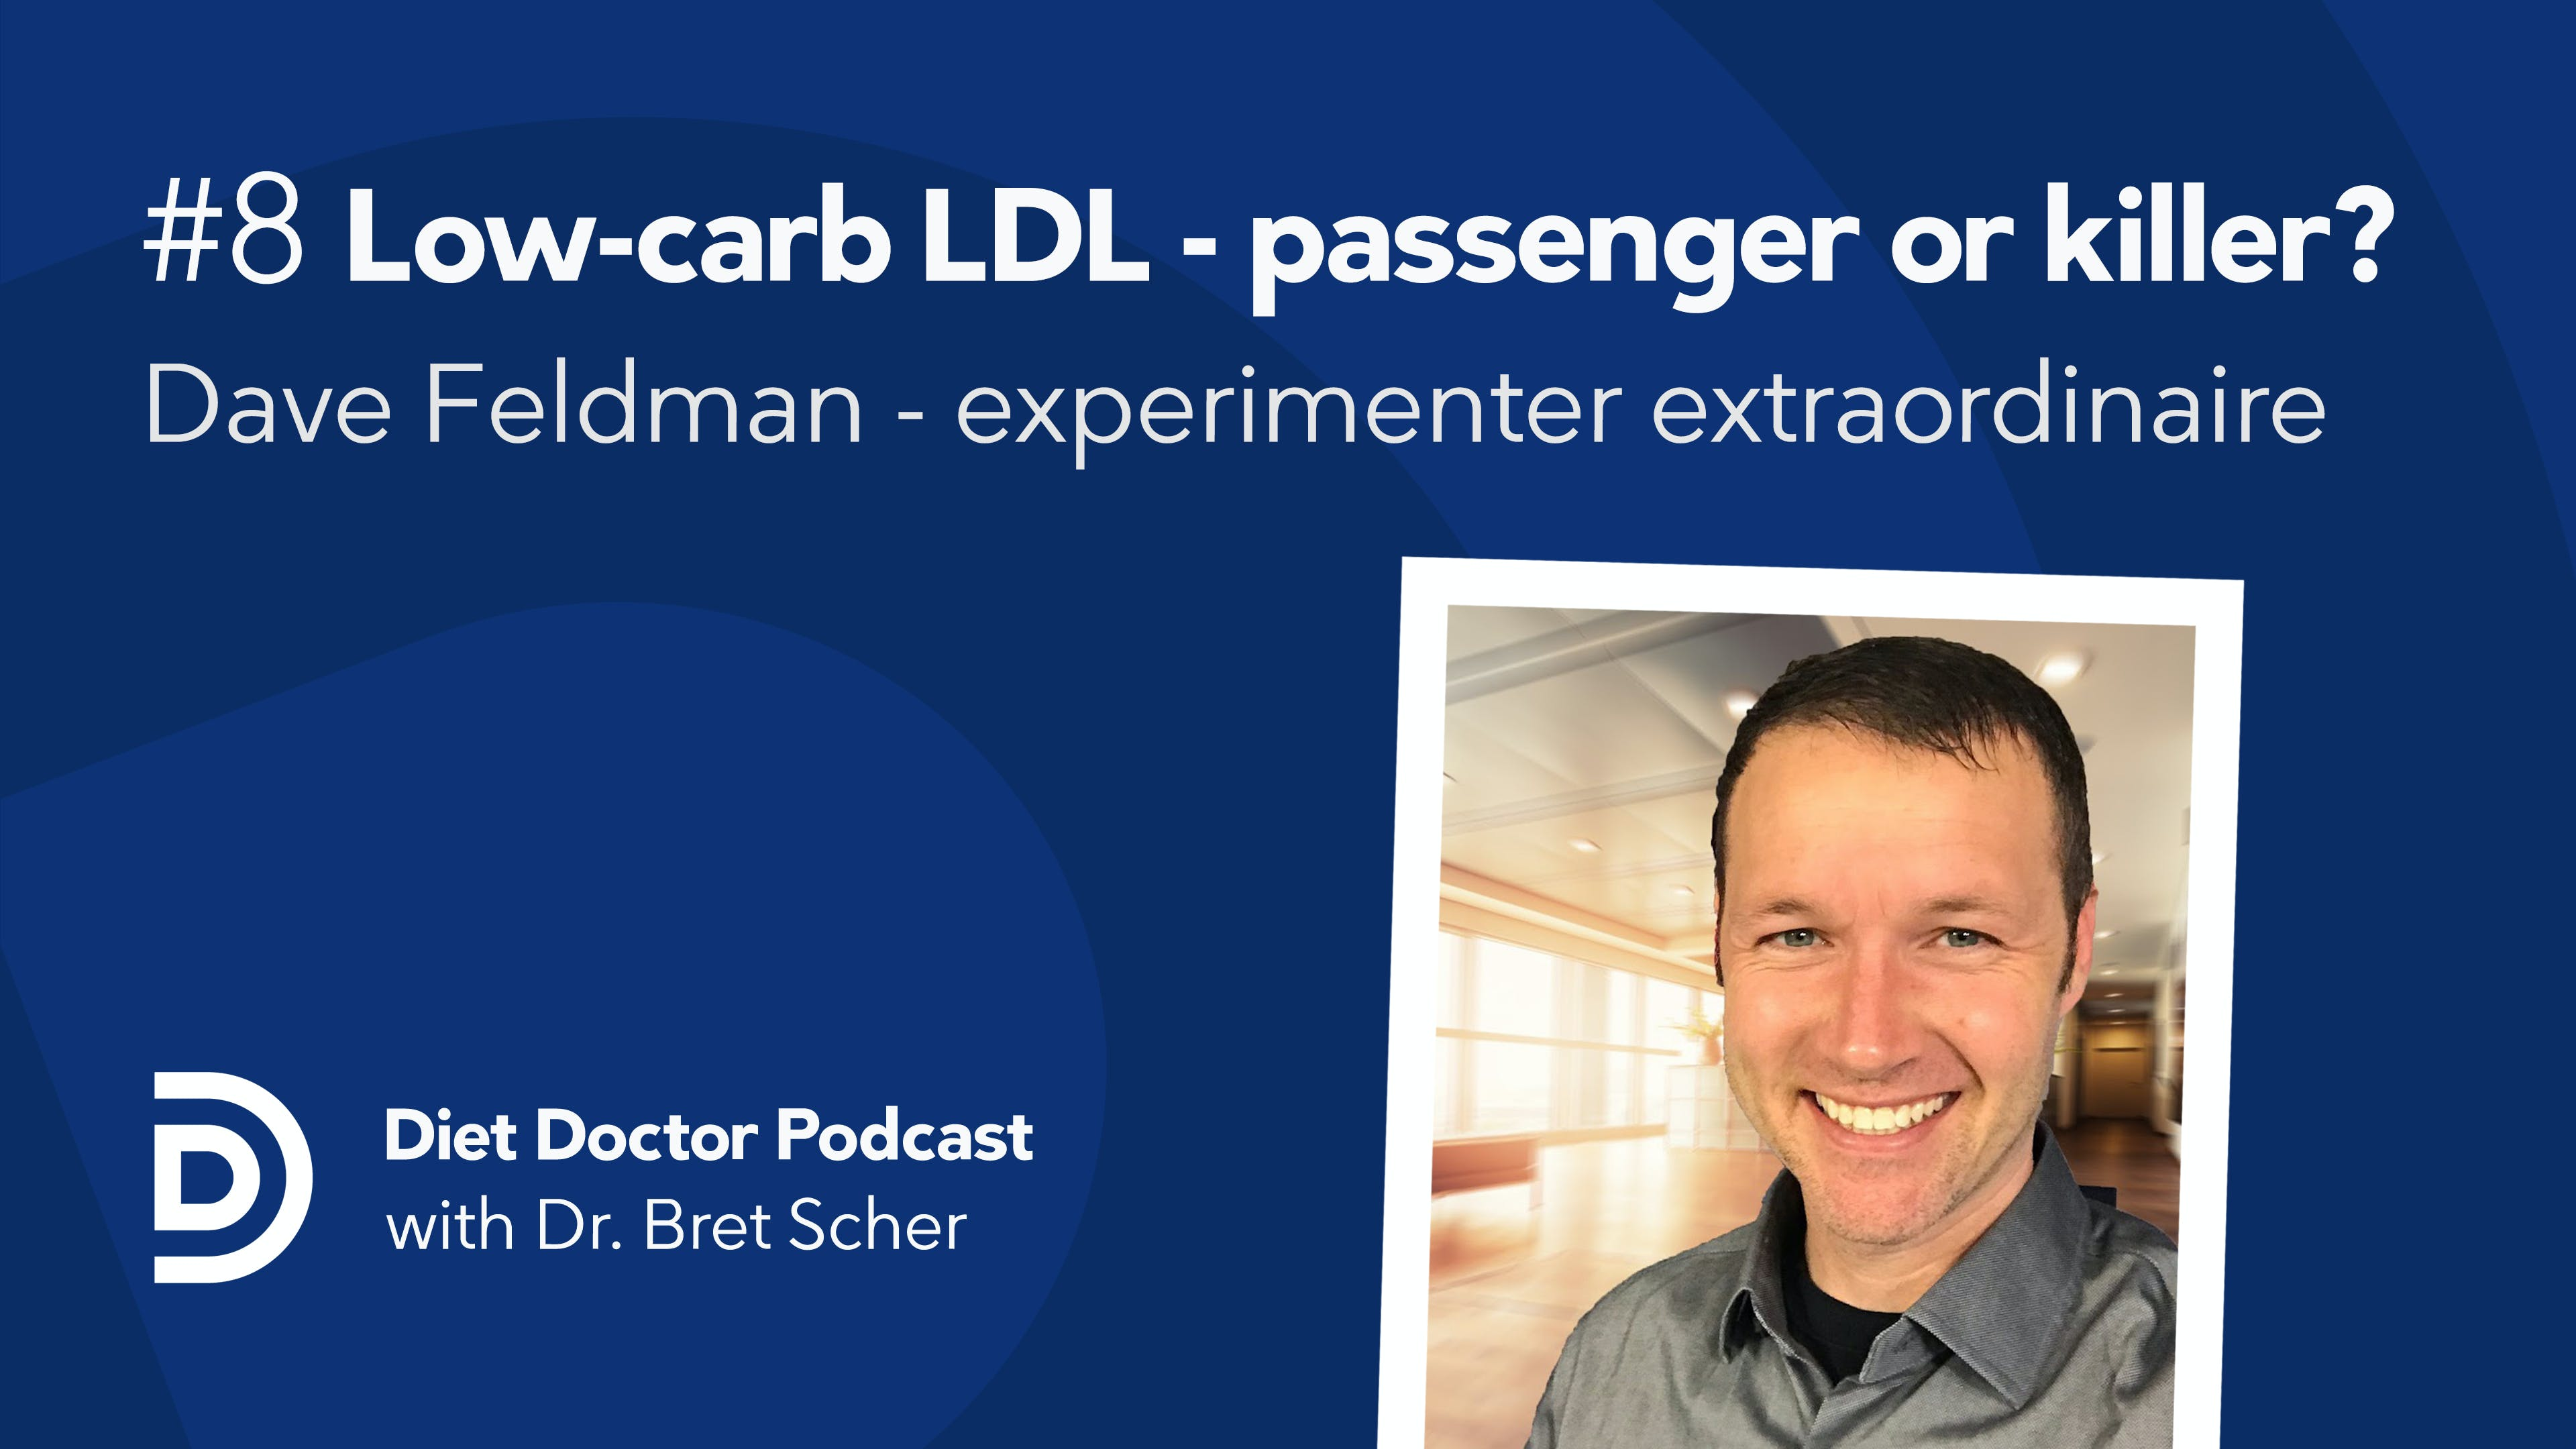 Diet Doctor podcast #8 – Dave Feldman